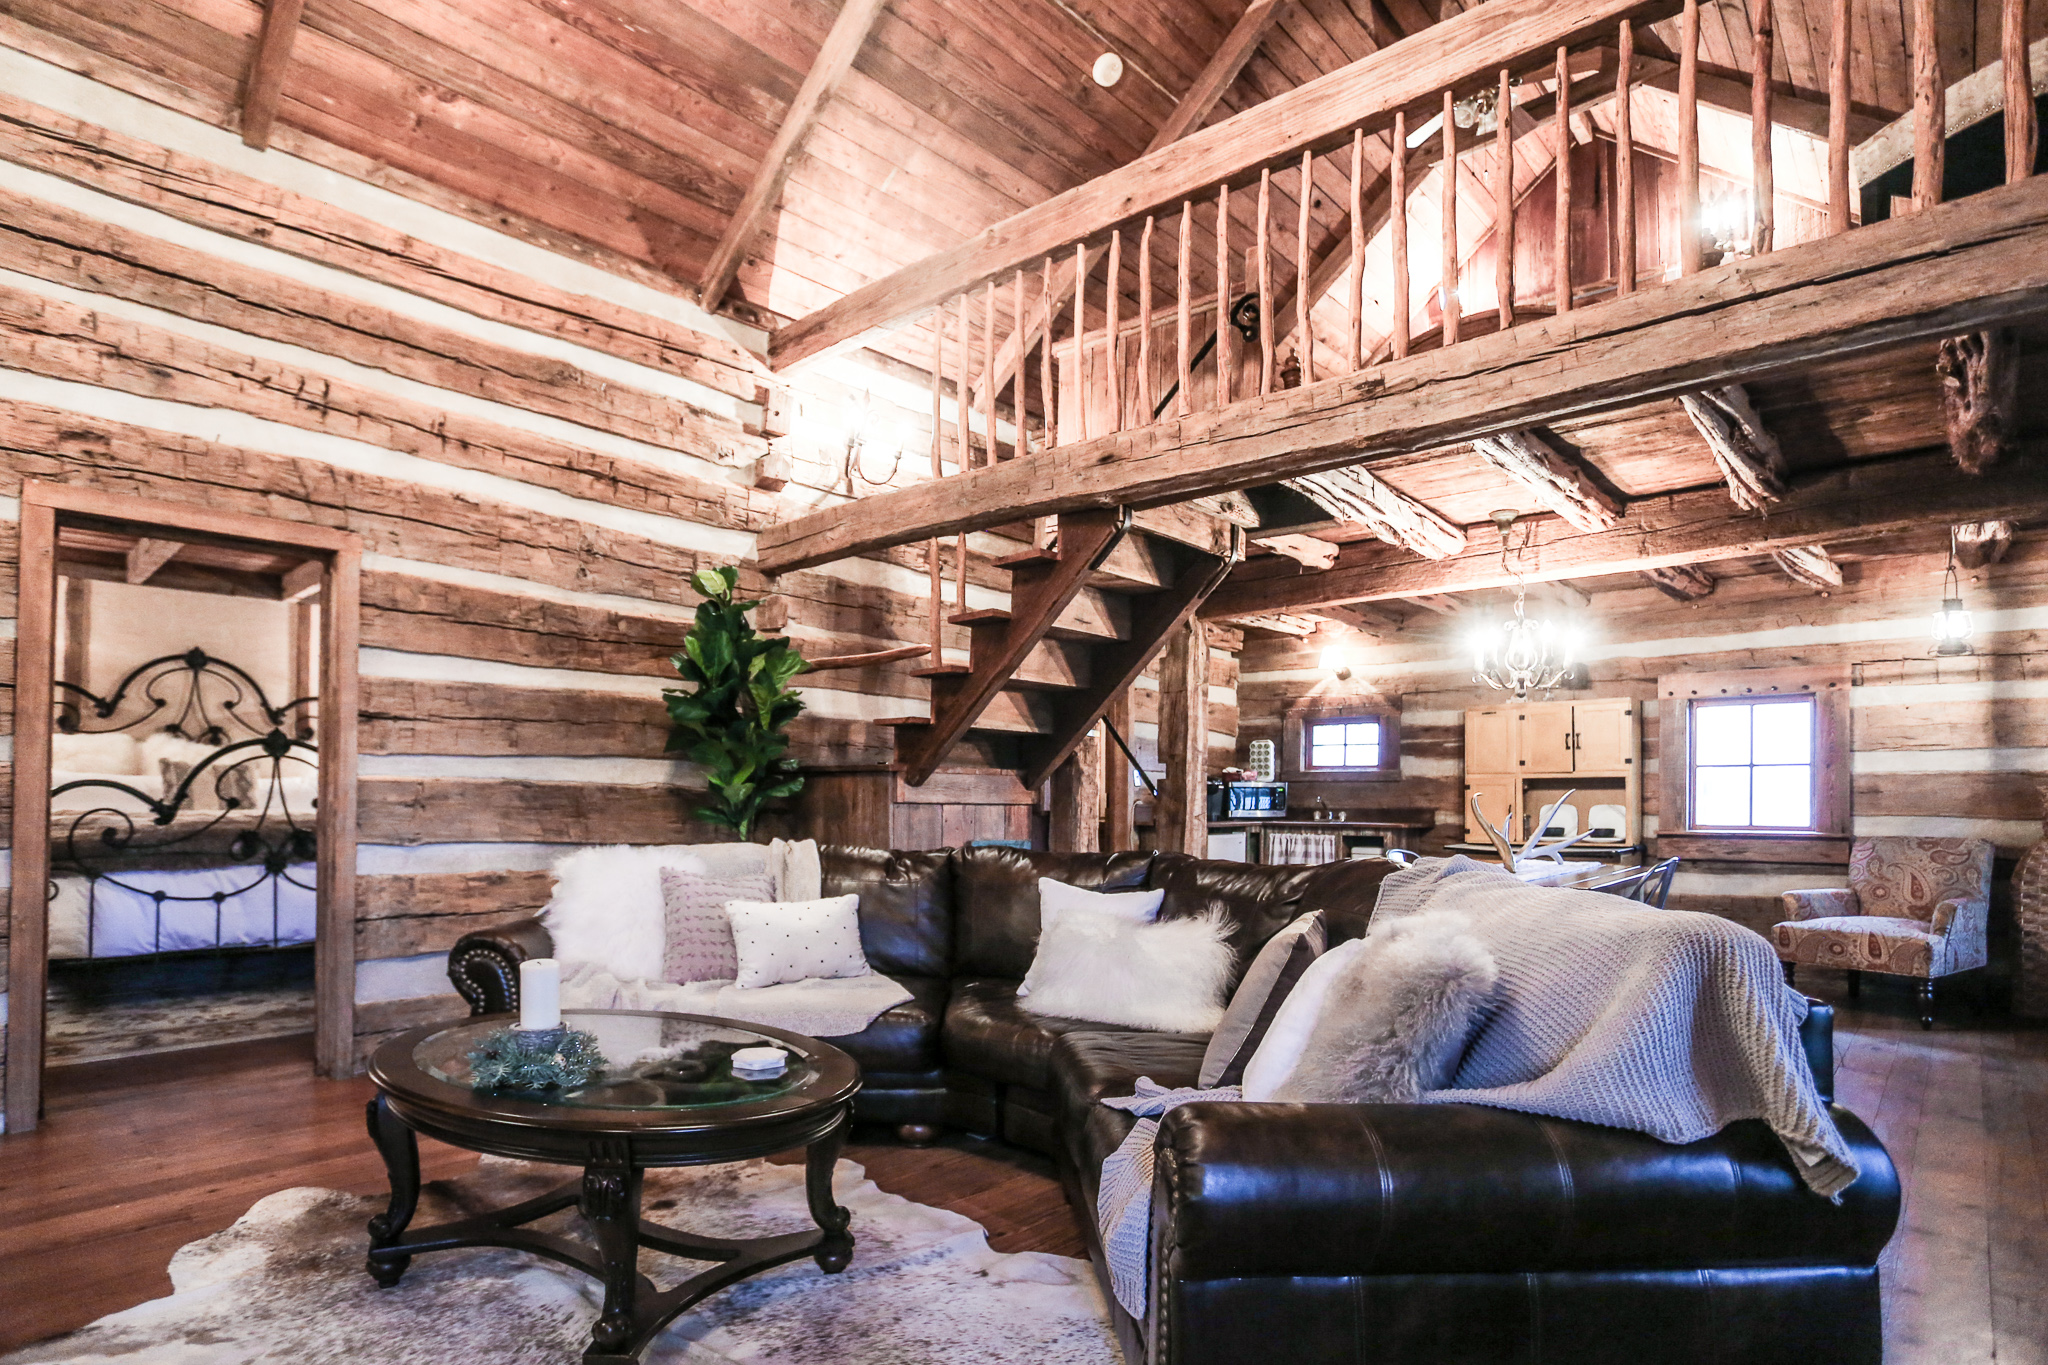 BUCKHORN CABIN - LUXURY 1790'S CABIN 2 BED | 1 BATH   Features: 2 Bedrooms, Hot Tub, Walking Distance, Peaceful Porch